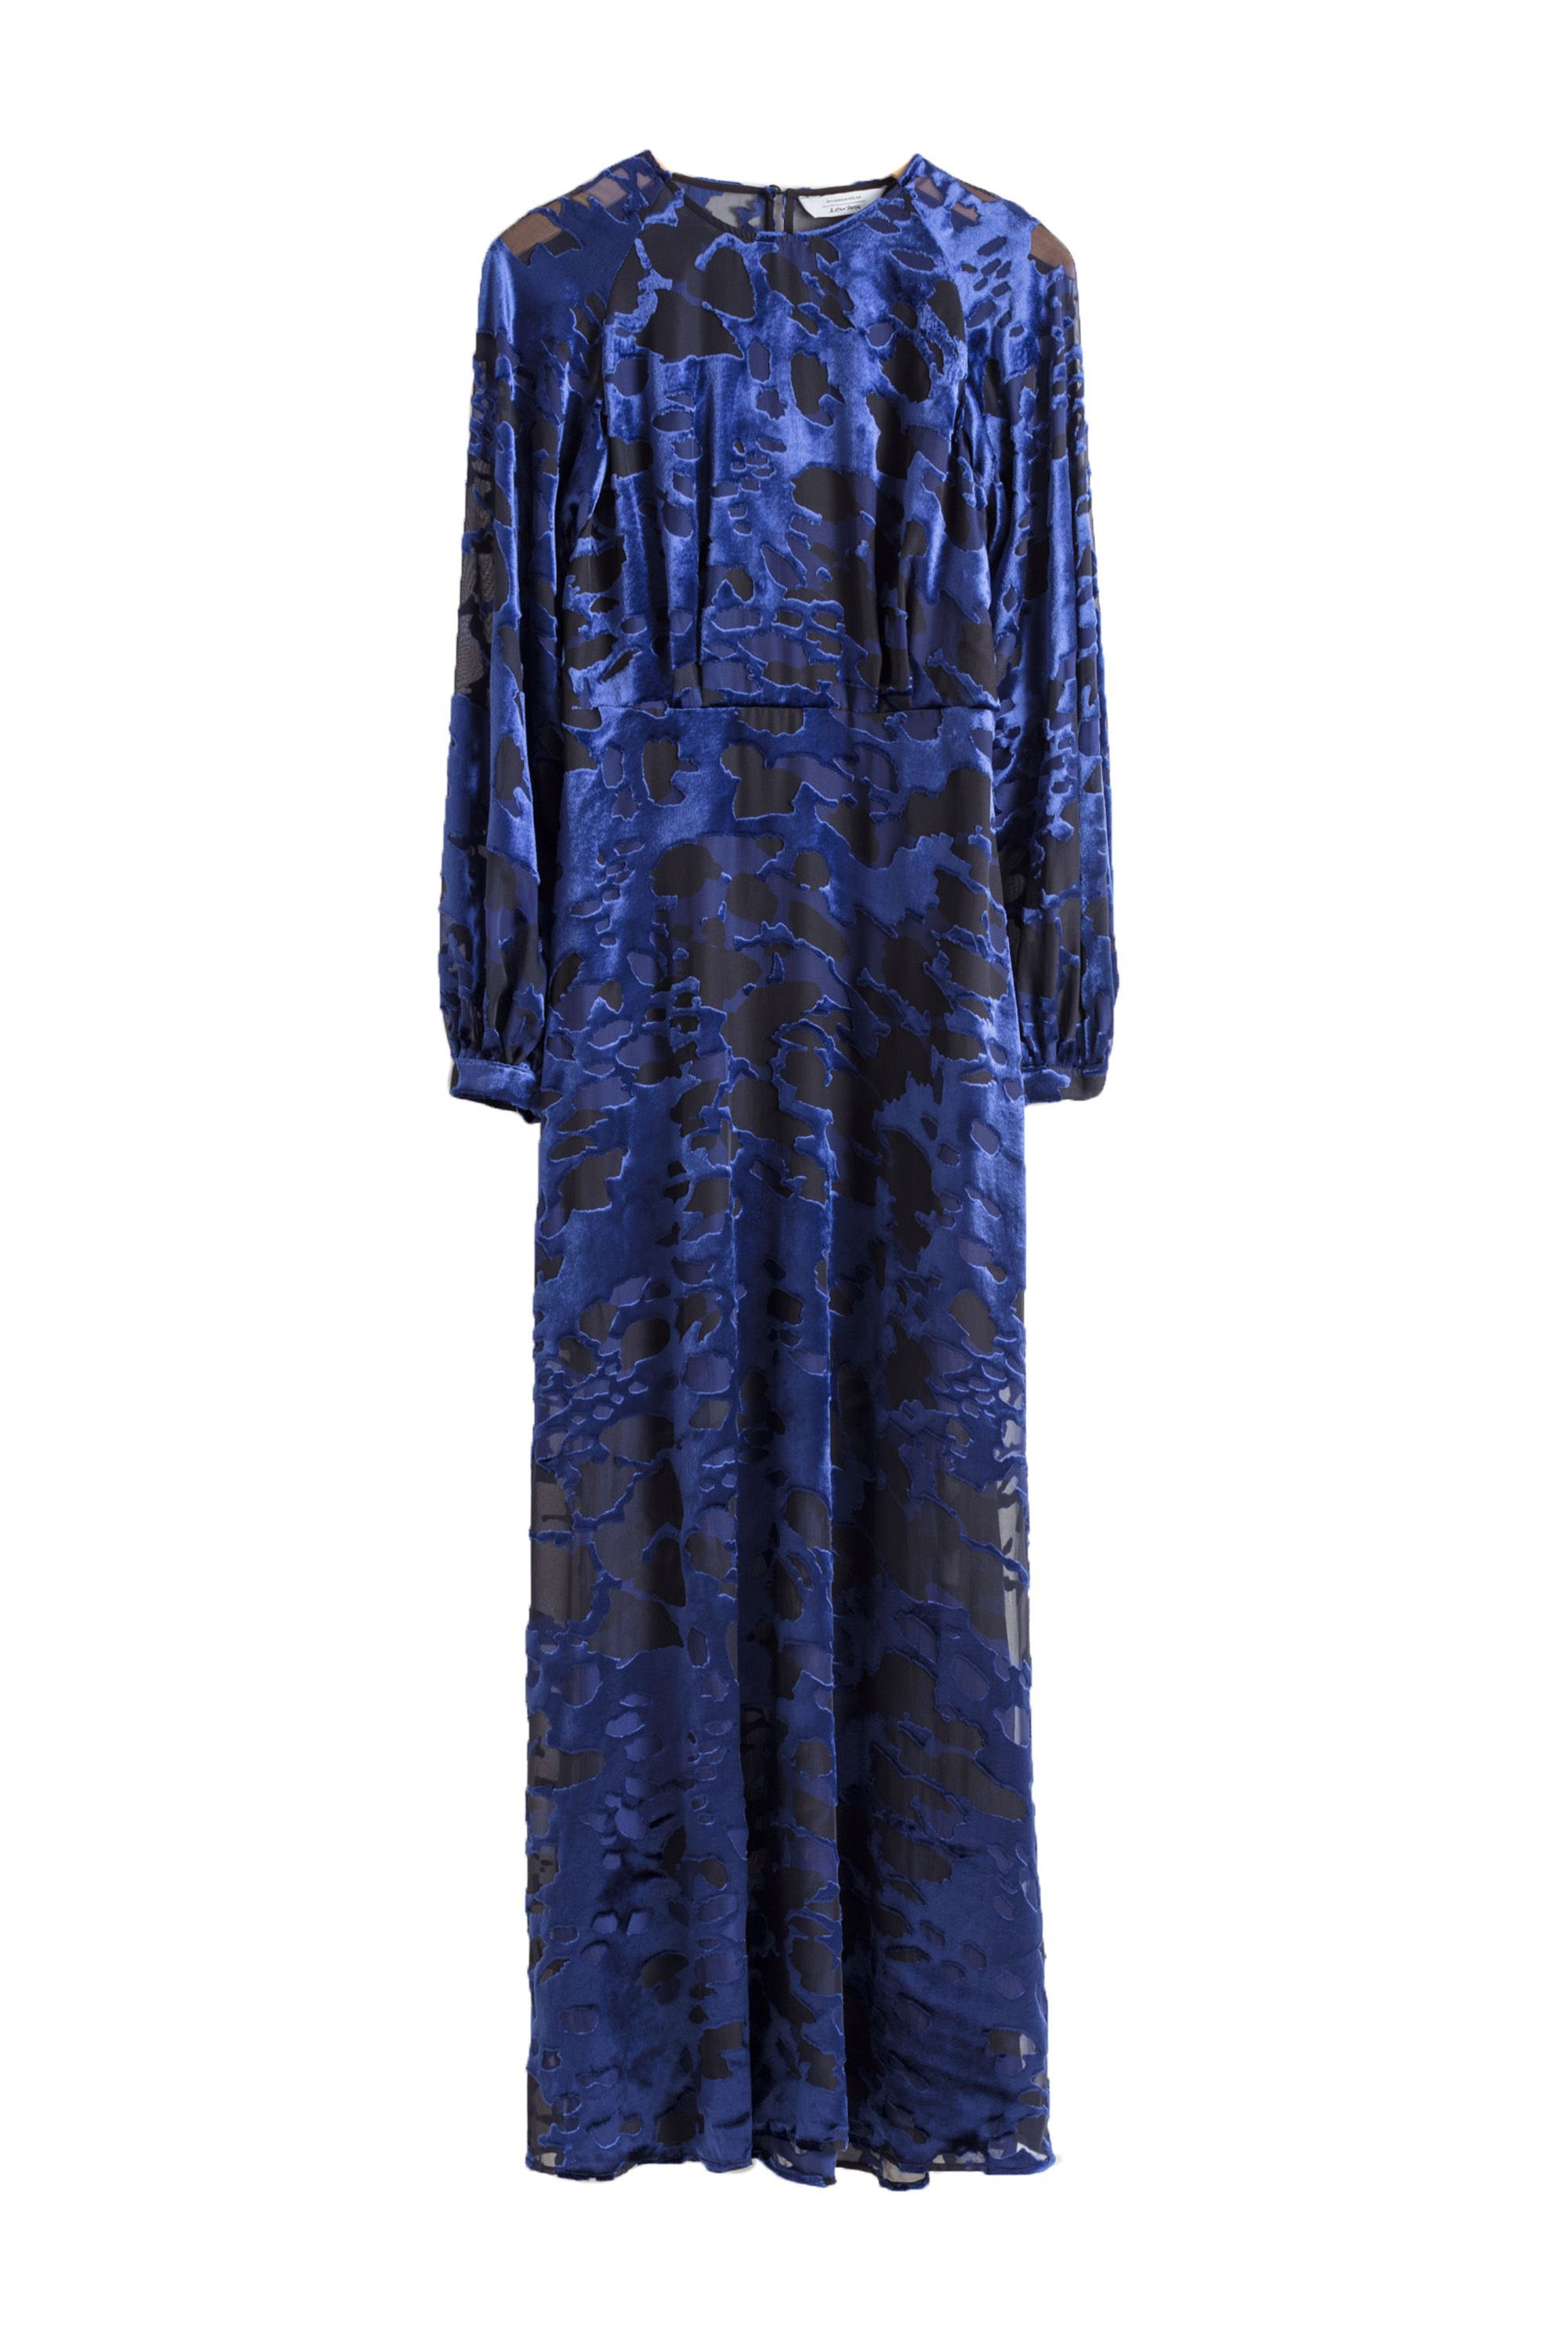 Sheer Velvet Maxi Dress & Other Stories stories.com $149.00 SHOP NOW If you're looking for an ultra-formal, floor-length number. this is the one.